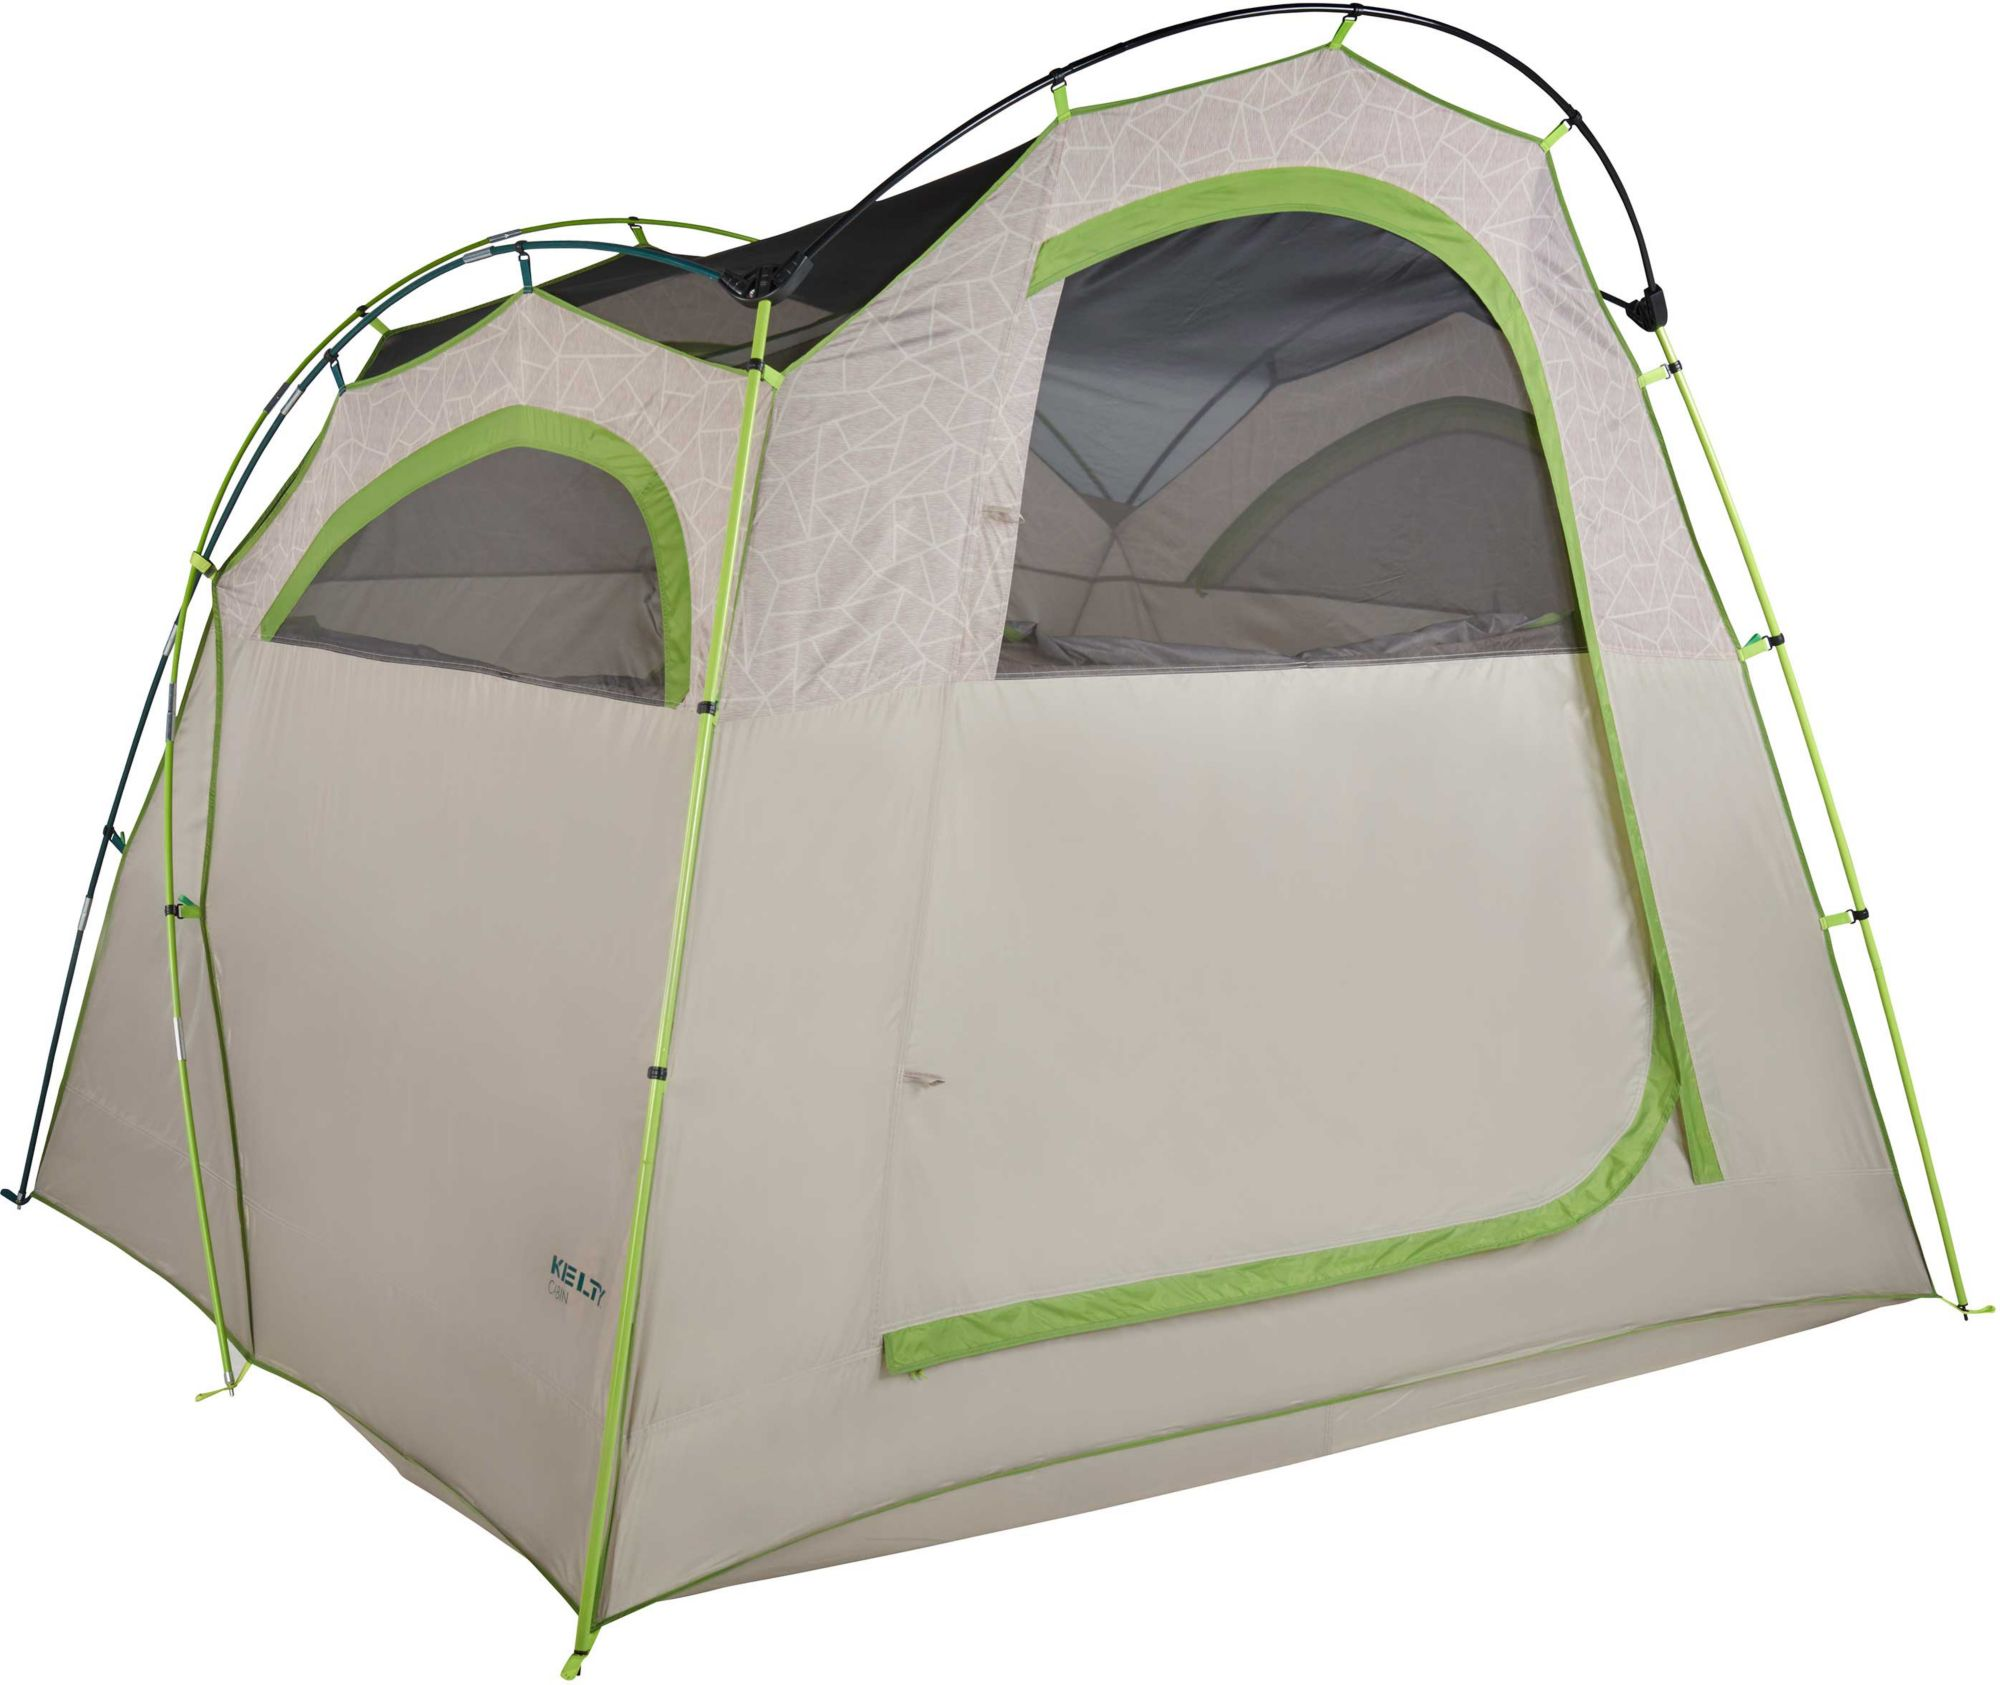 Kelty C& Cabin 4 Person Tent  sc 1 st  DICKu0027S Sporting Goods & Camping Tents | DICKu0027S Sporting Goods